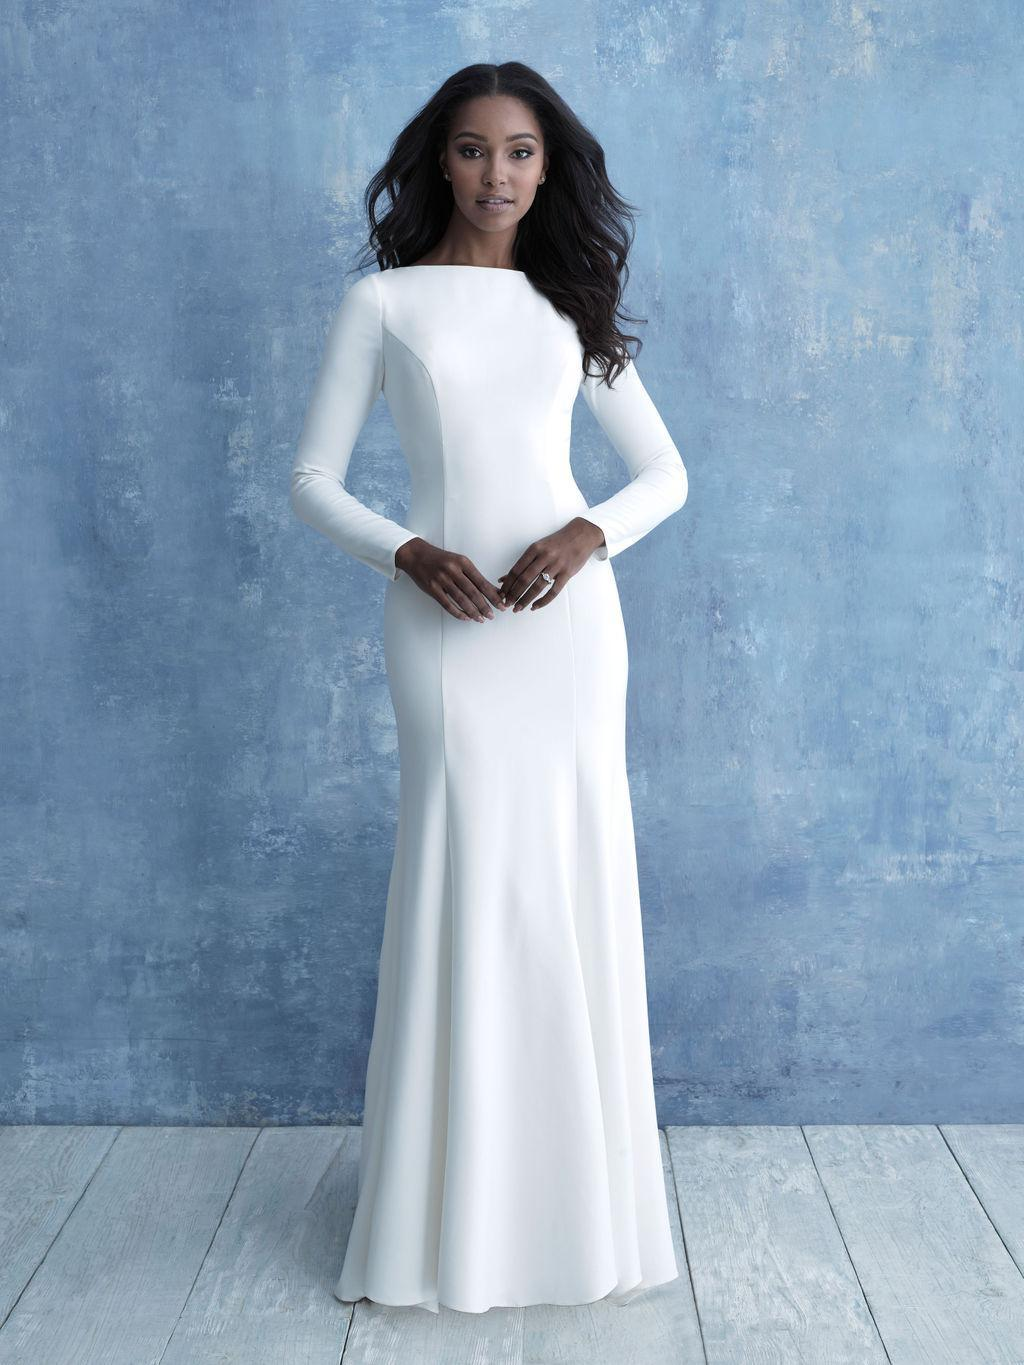 Allure M636 modest wedding dress with long sleeves all crepe chapel train LDS bridal gown for plus size brides